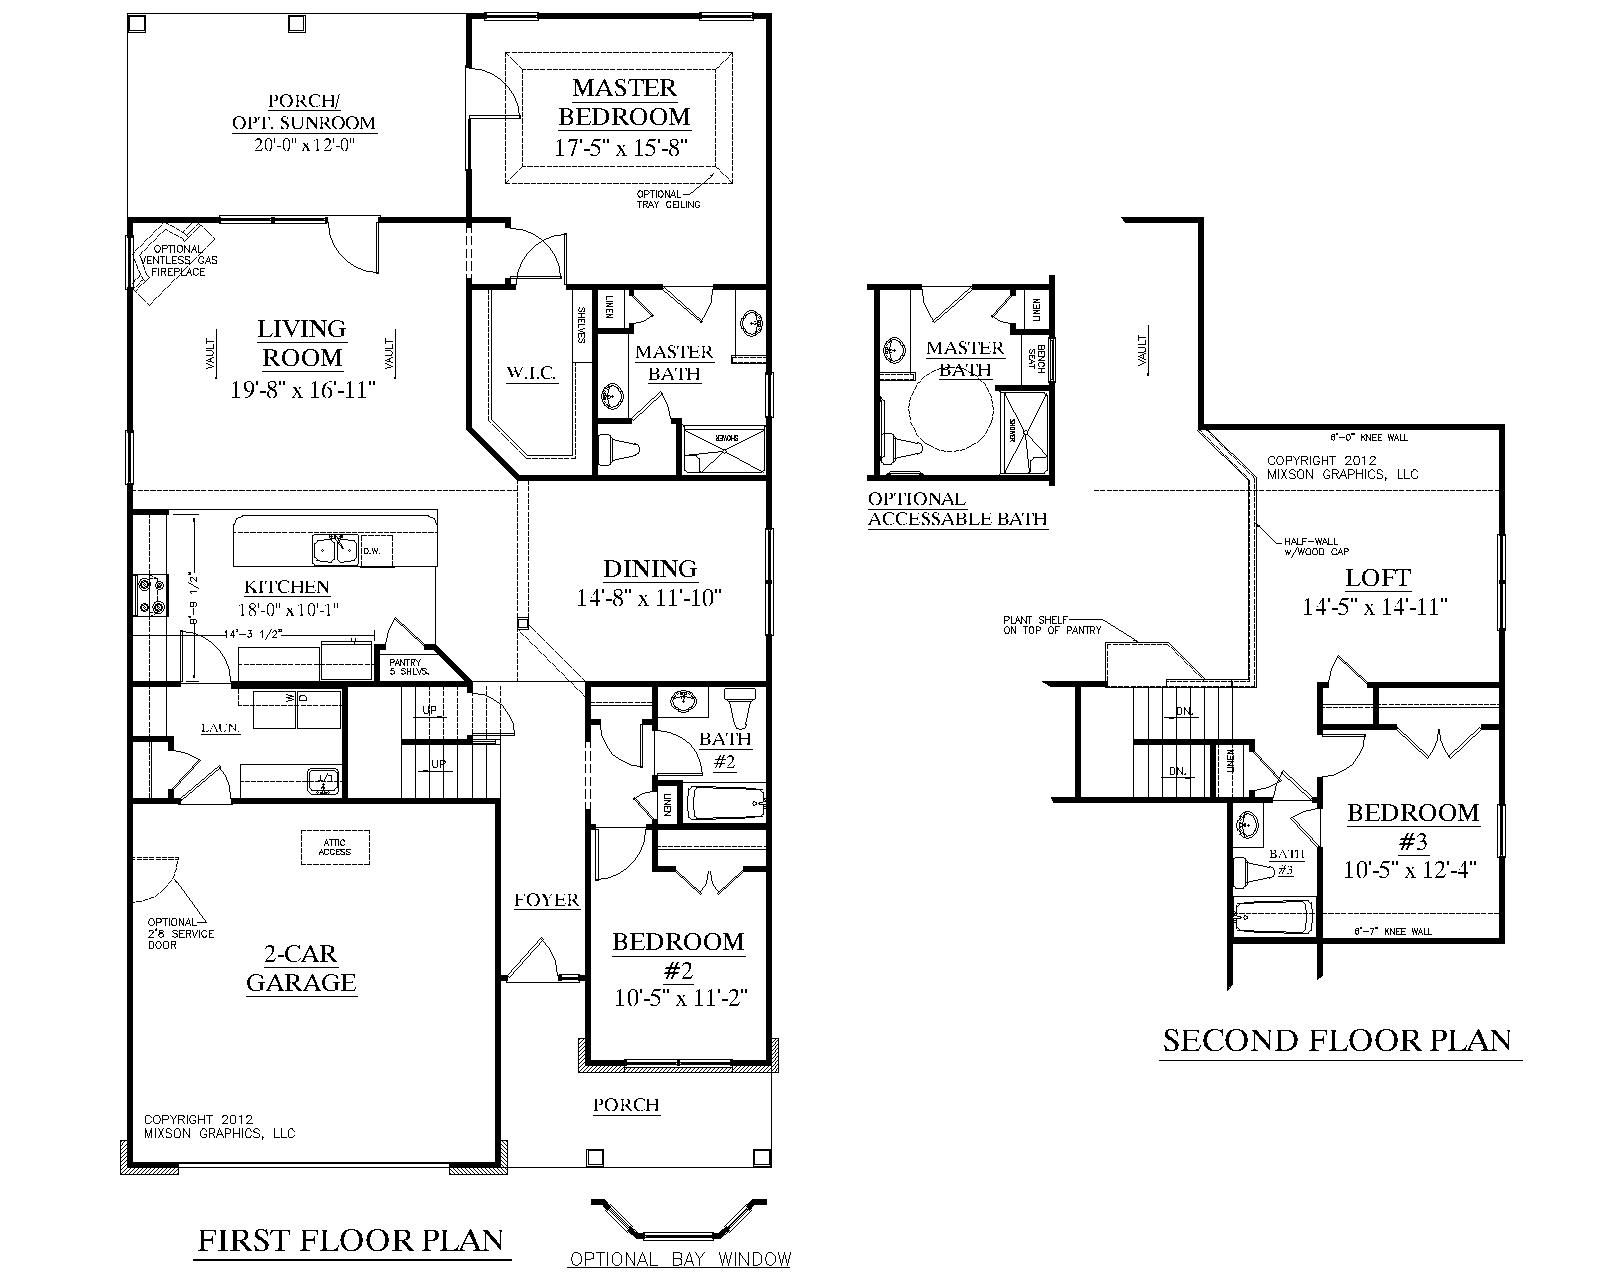 House plan 2224 kingstree floor plan traditional 1 1 2 for Two story house floor plans